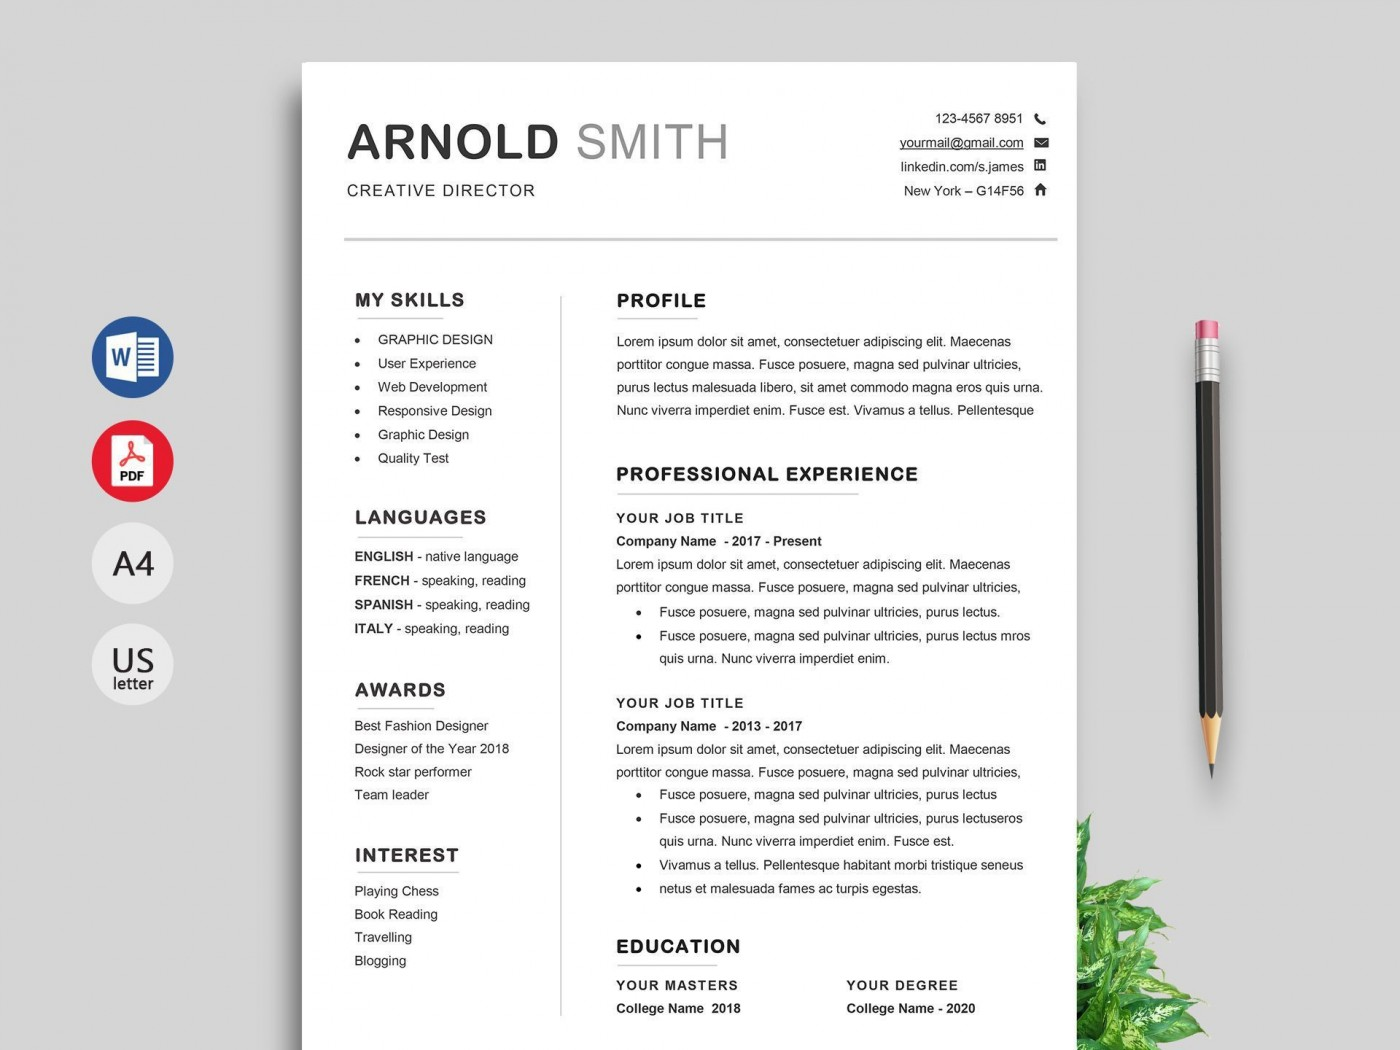 000 Impressive Professional Resume Template 2018 Free Download Idea 1400